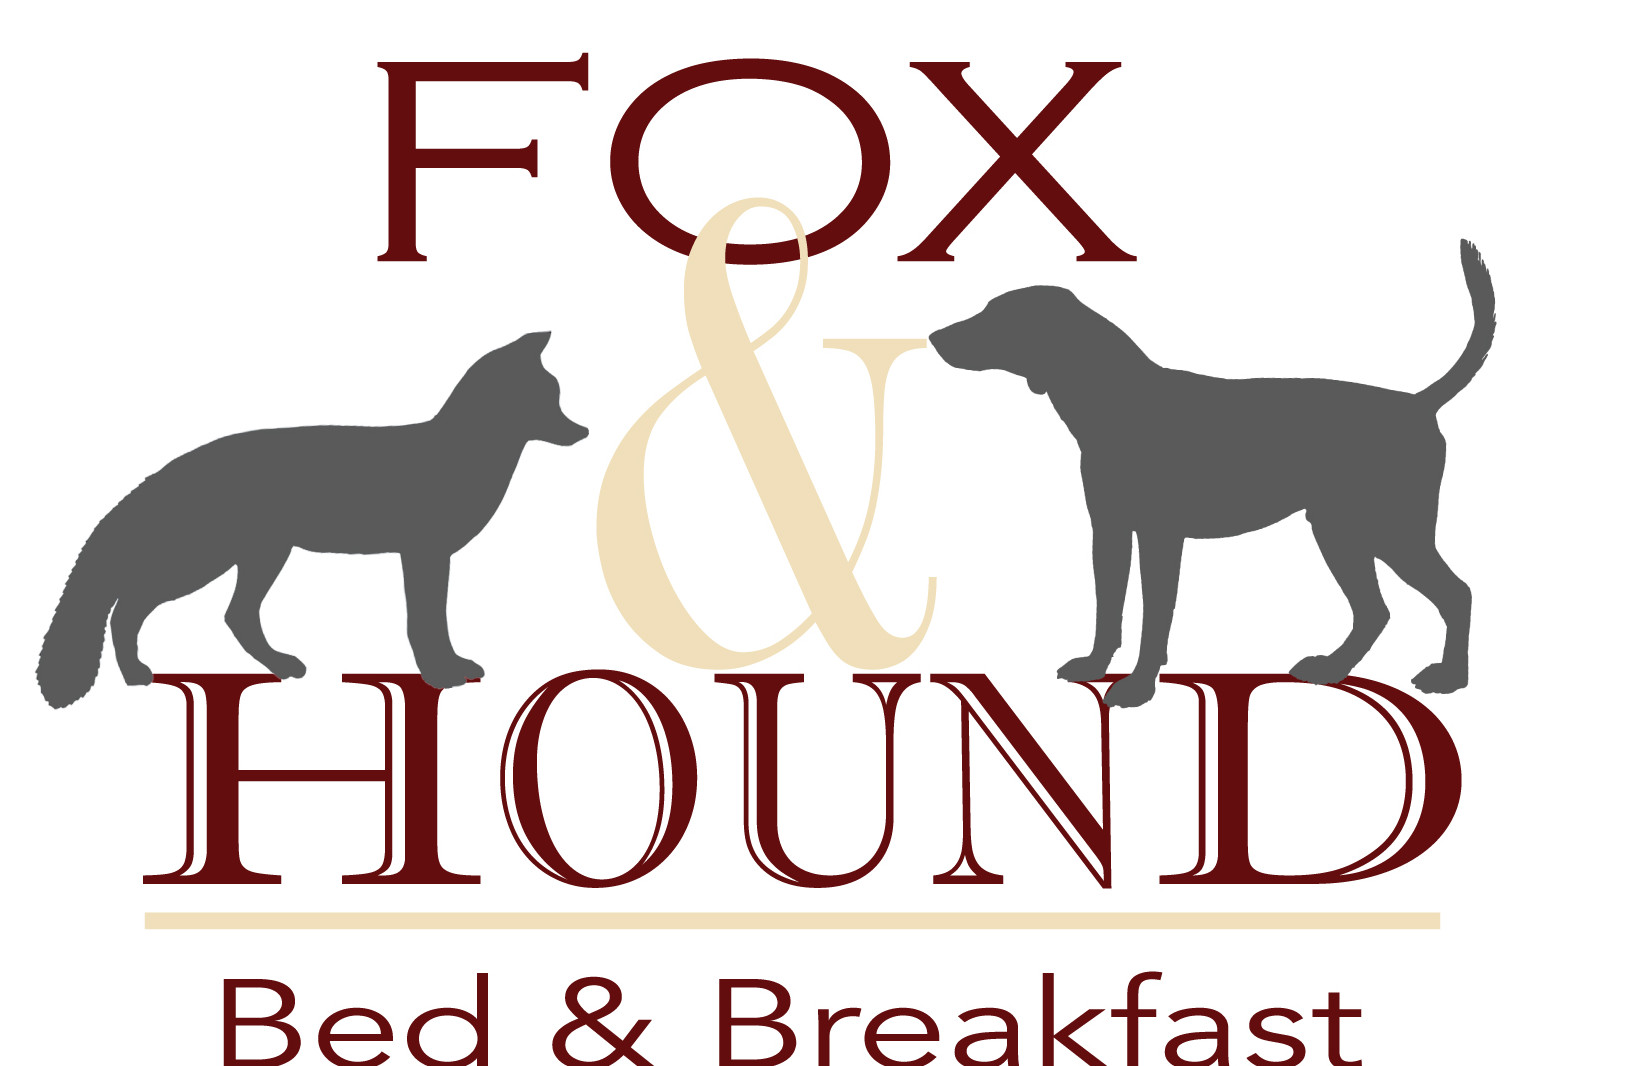 logo of fox and hound w pic of fox and hound shadowed